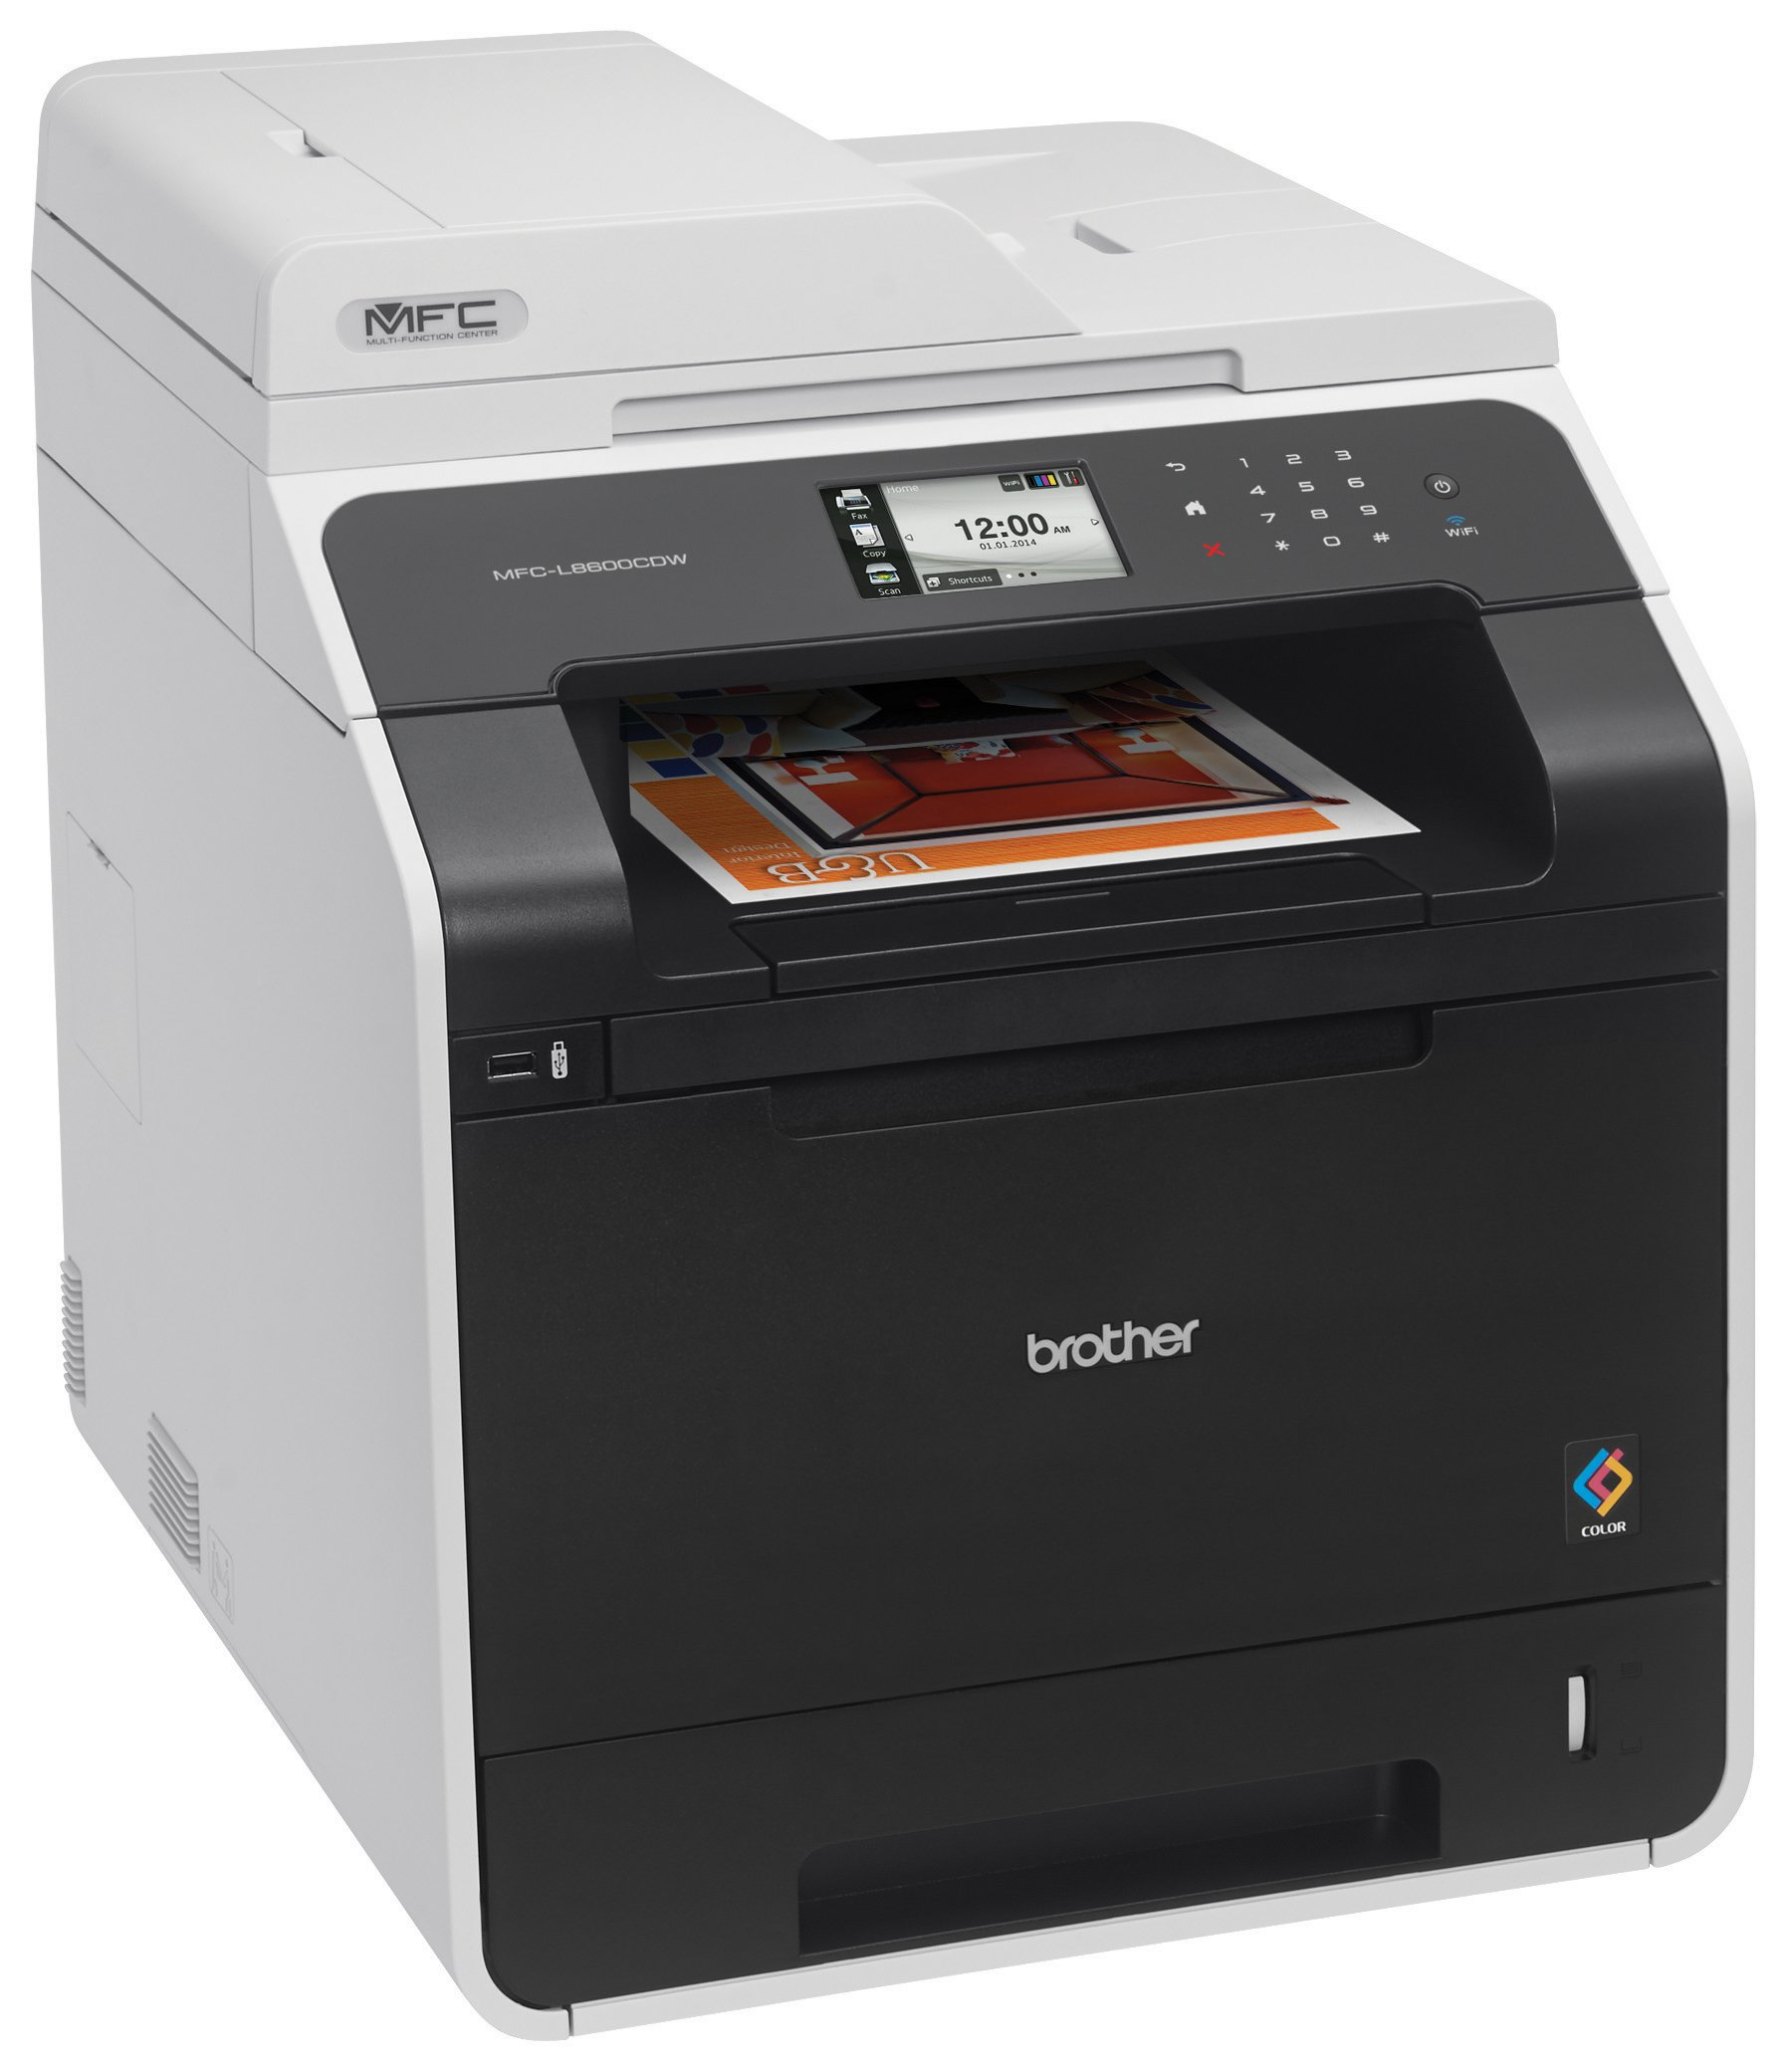 Brother Printer MFCL8600CDW Wireless Color Printer with Scanner, Copier and Fax, Amazon Dash Replenishment Enabled